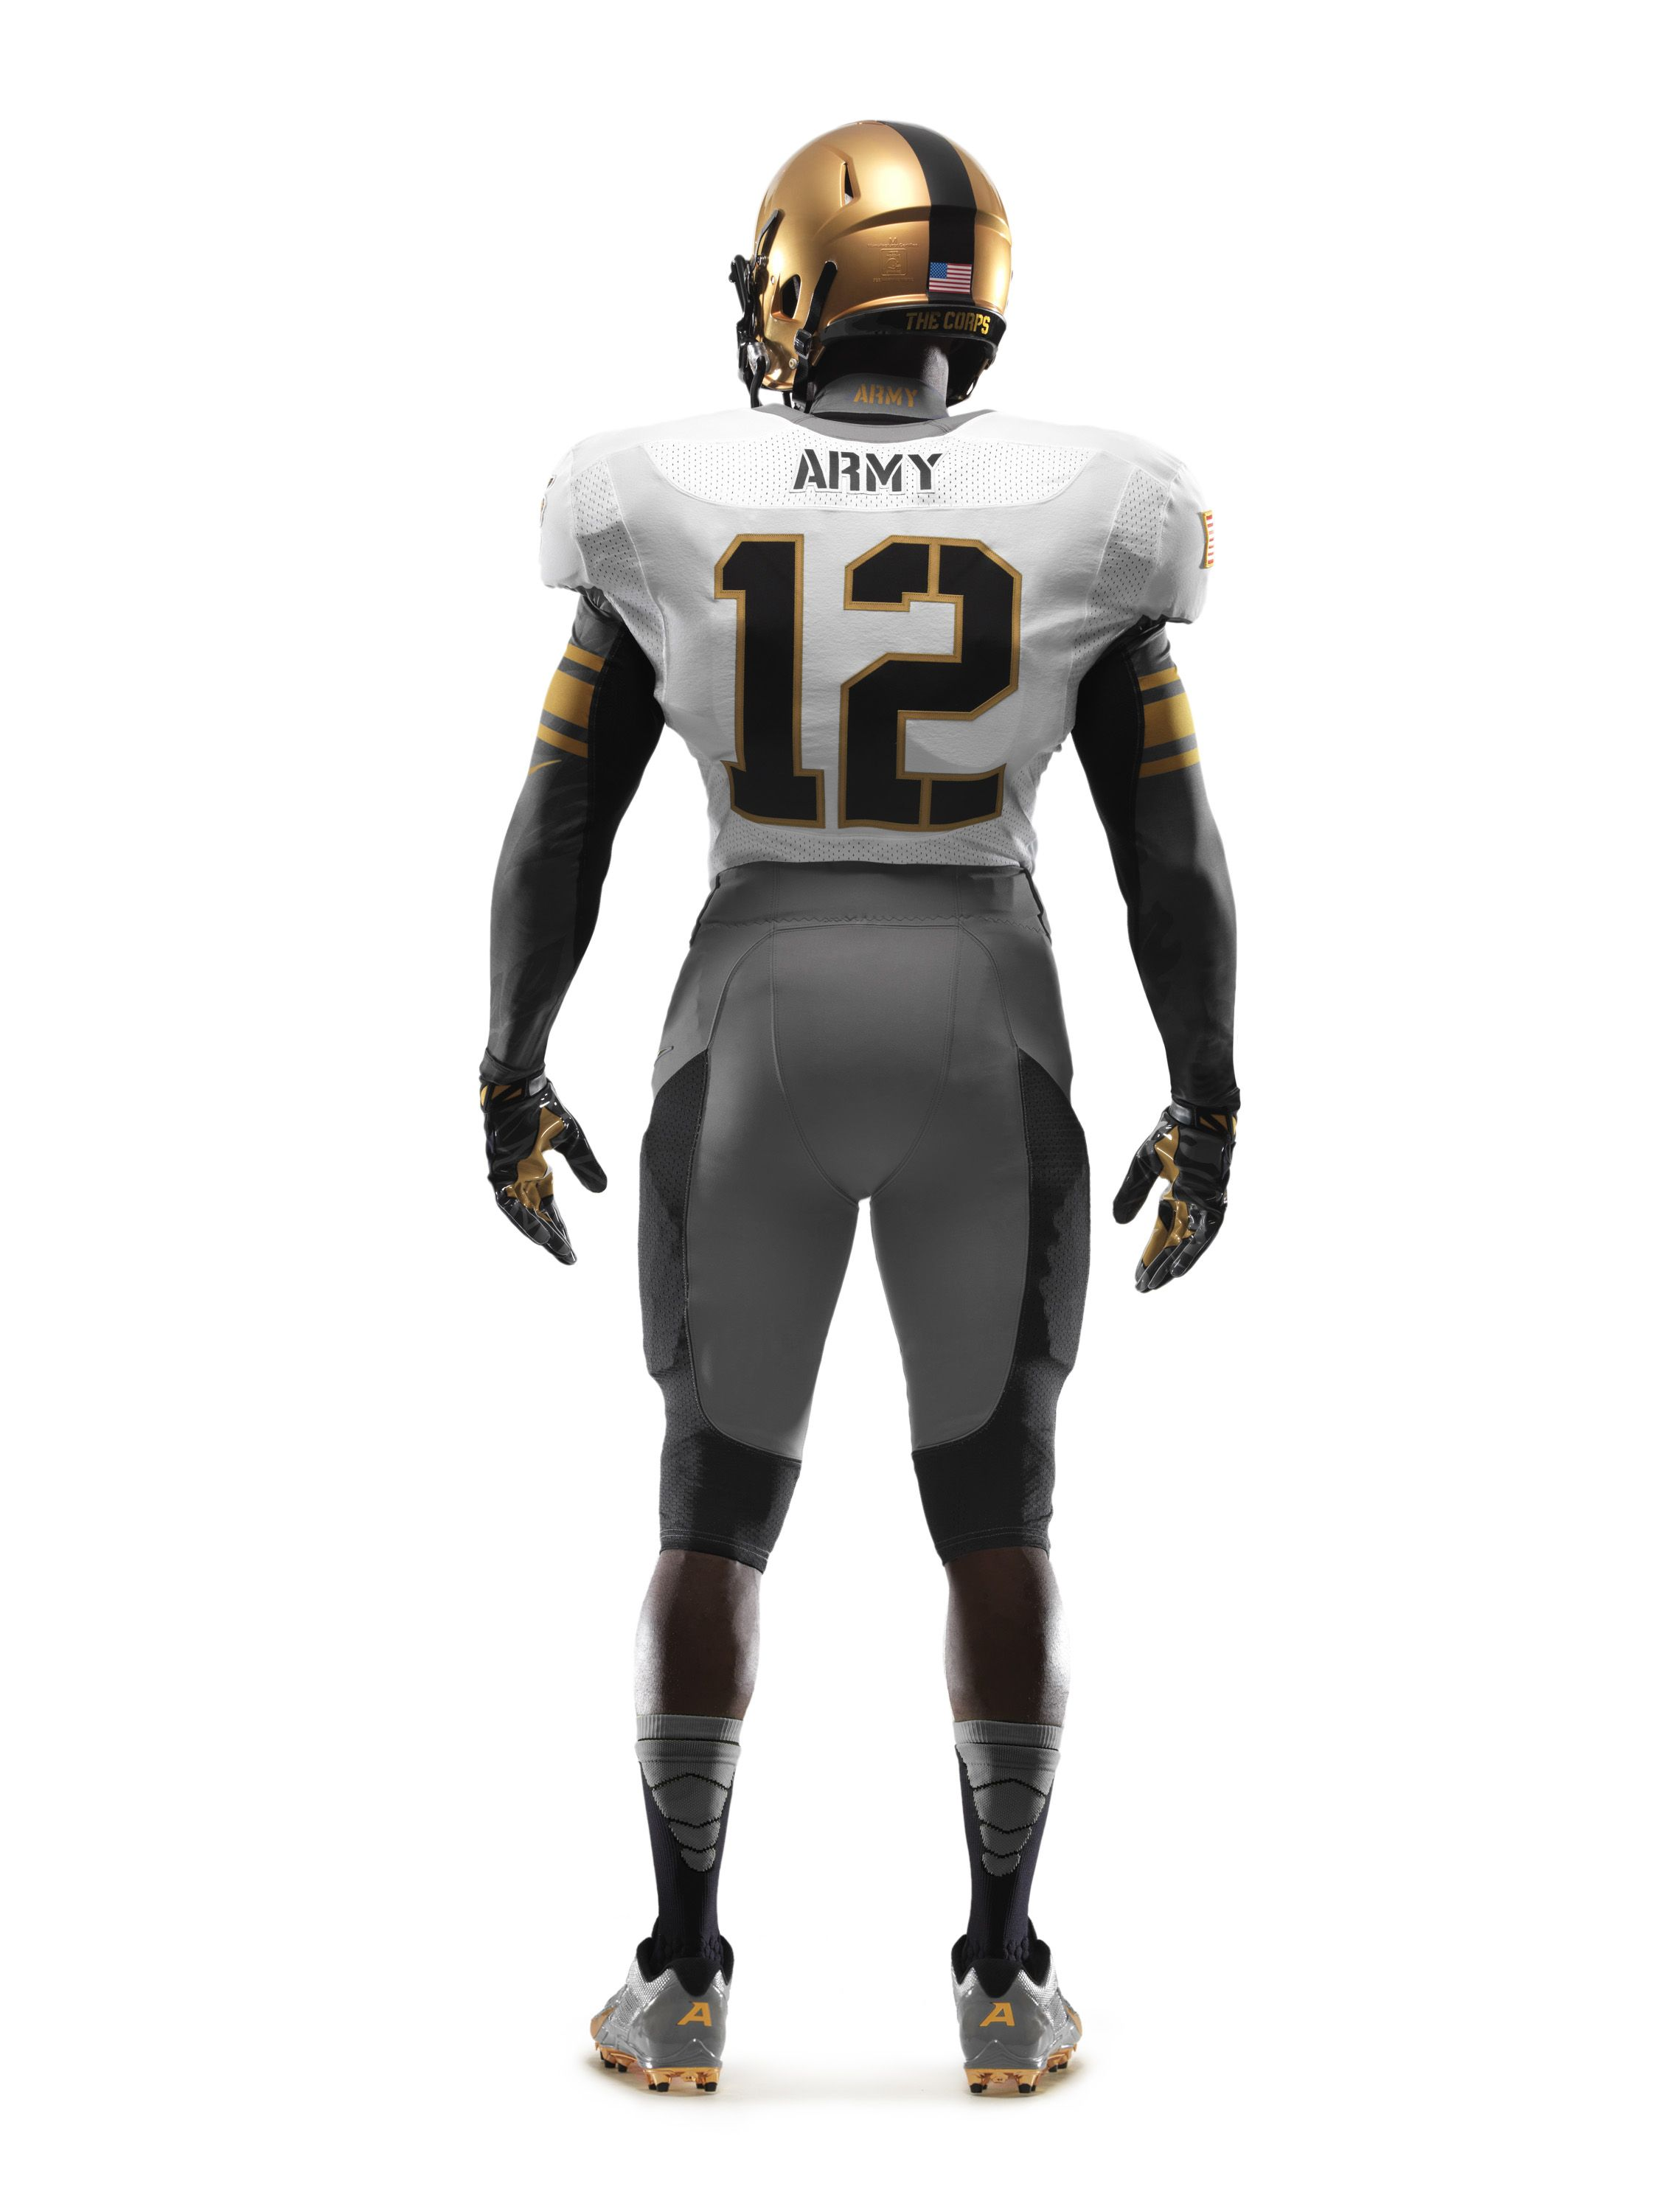 The Back Of Army S Uniform For The Army Navy Game Presented By Usaa Nike Footwear C 2013 Jim Golden All R